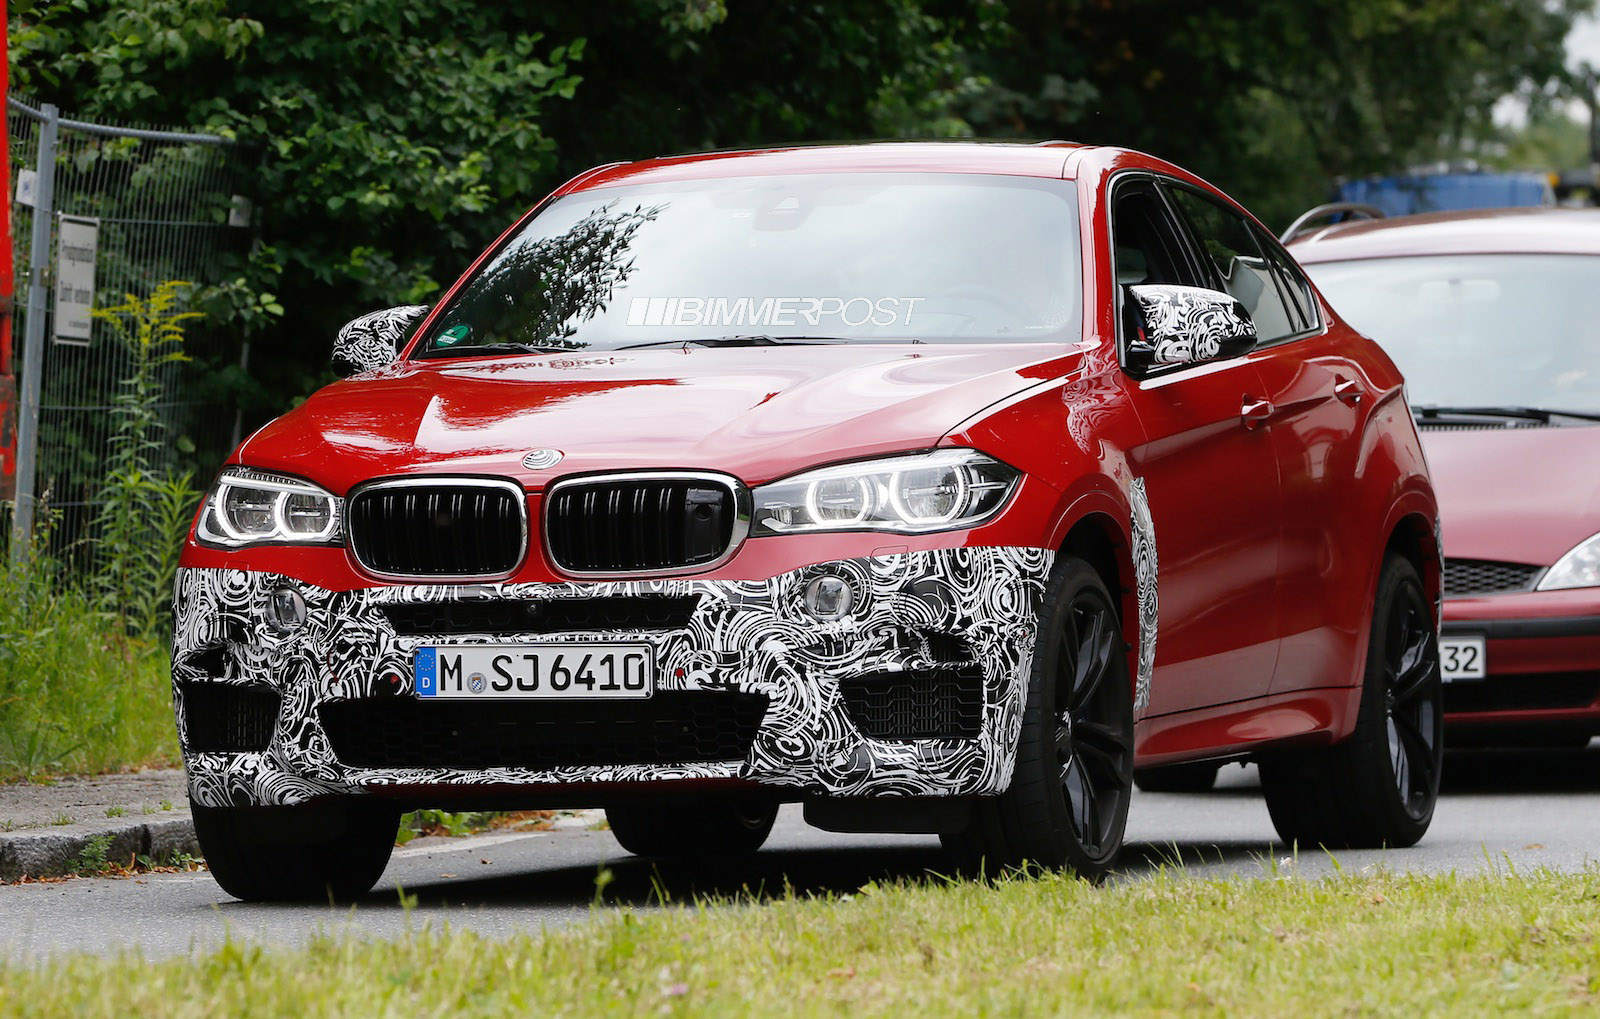 Bmw X6 Forum Bmw Forum Bmw News And Bmw Blog Bimmerpost